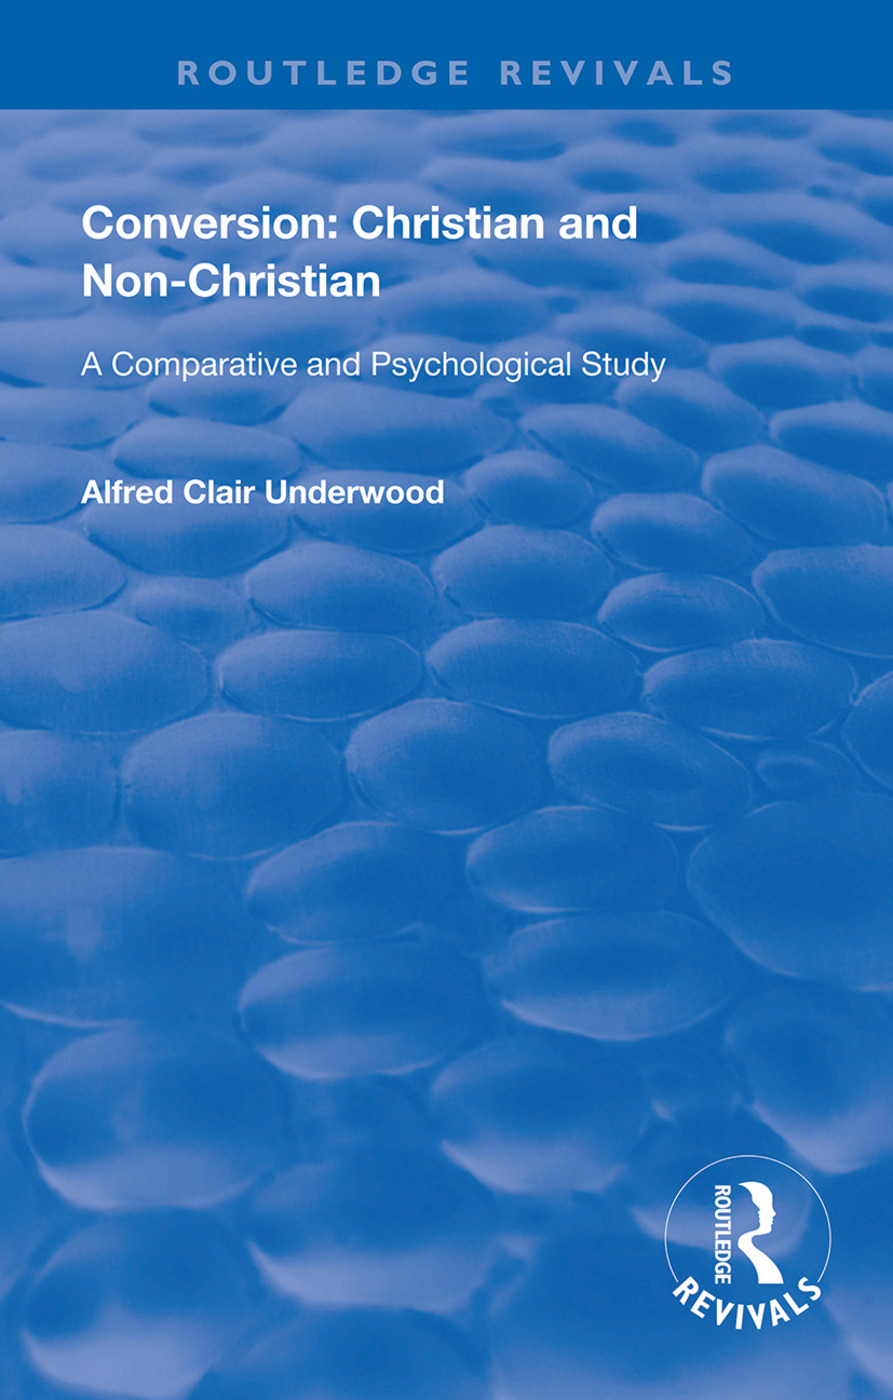 Conversion: Christian and Non-Christian: A Comparative and Psychological Study book cover